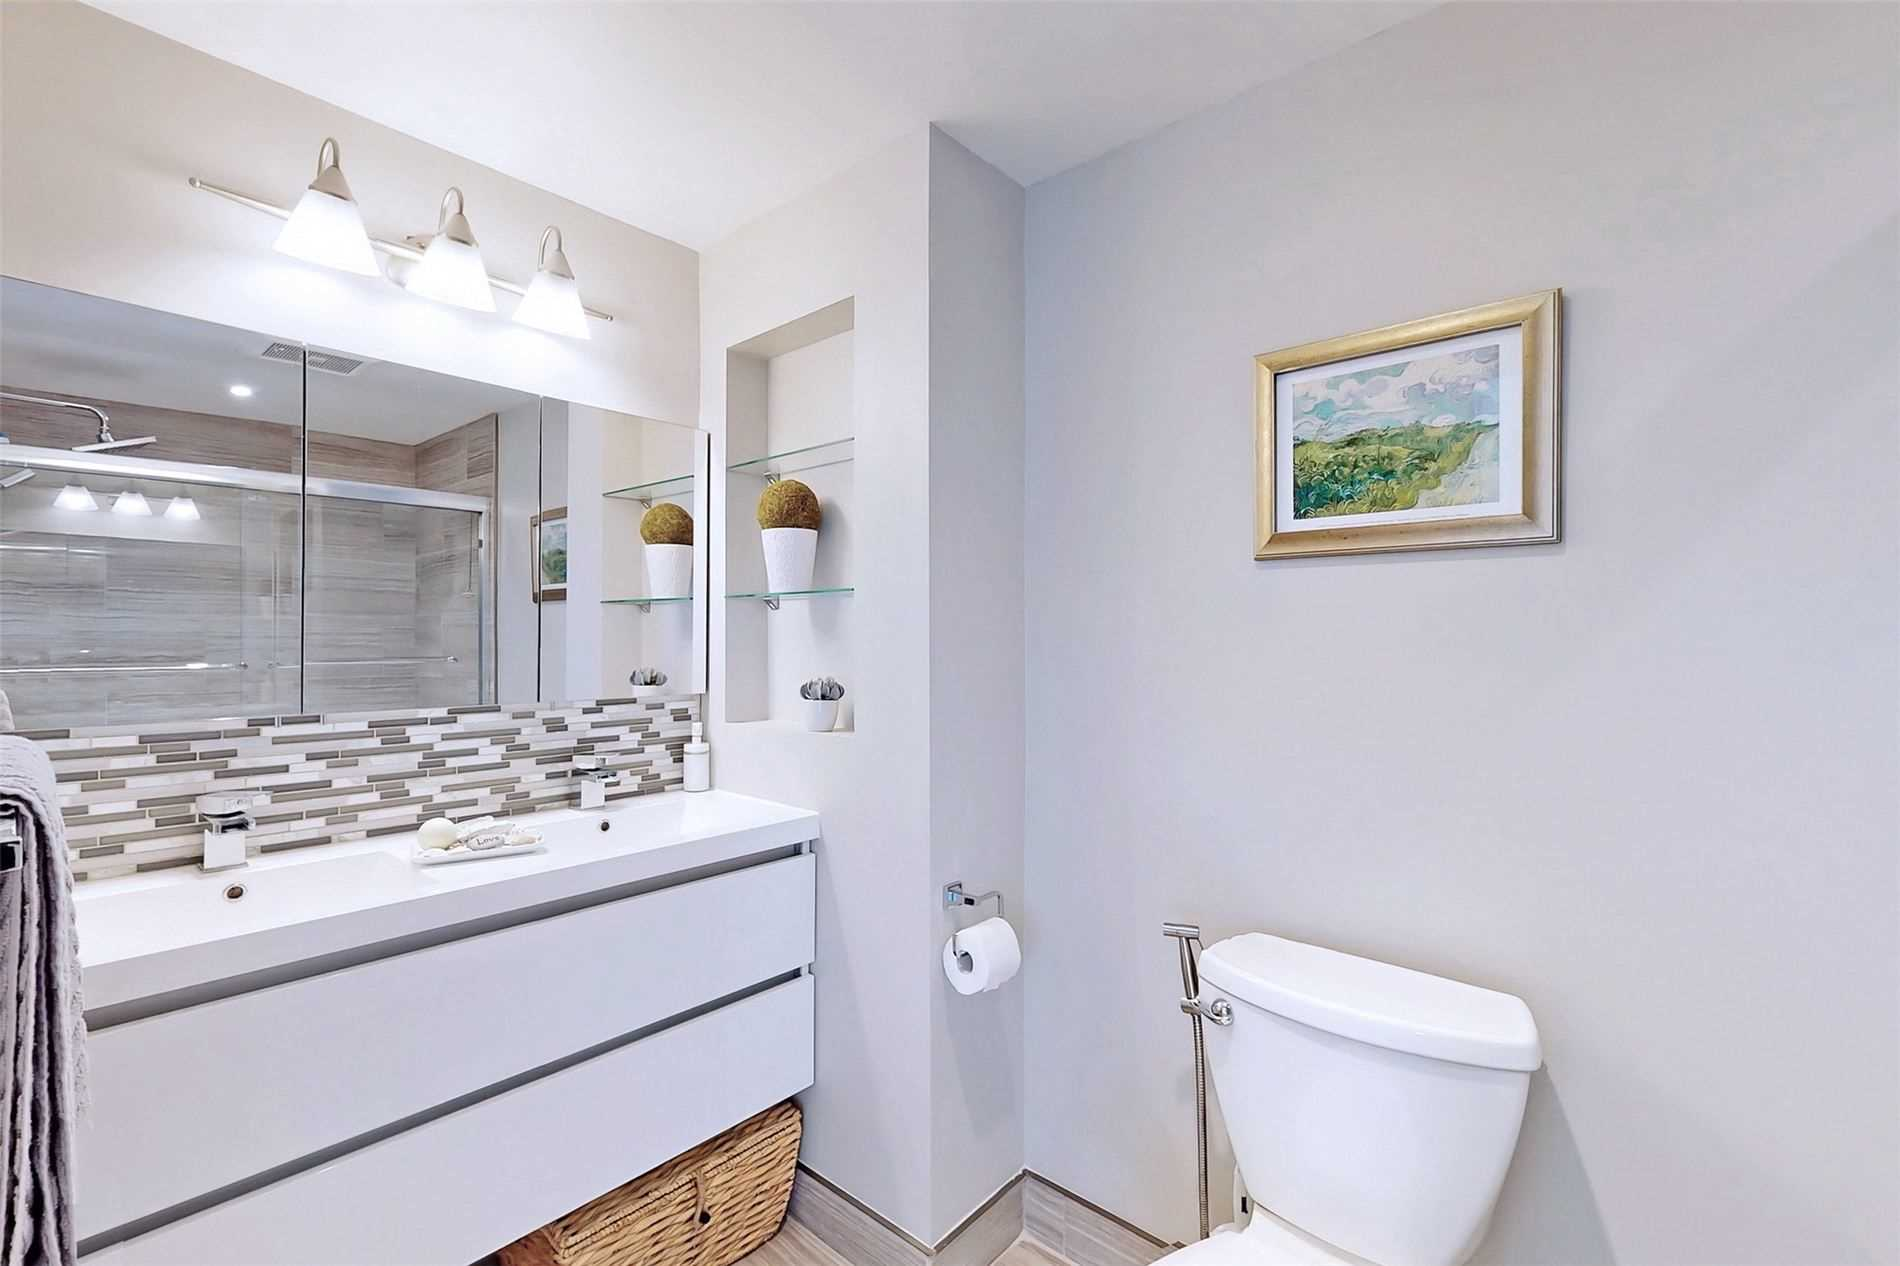 Image 26 of 40 showing inside of 3 Bedroom Condo Townhouse 3-Storey for Sale at 14 Cumberland Lane Unit# 7, Ajax L1S7K4